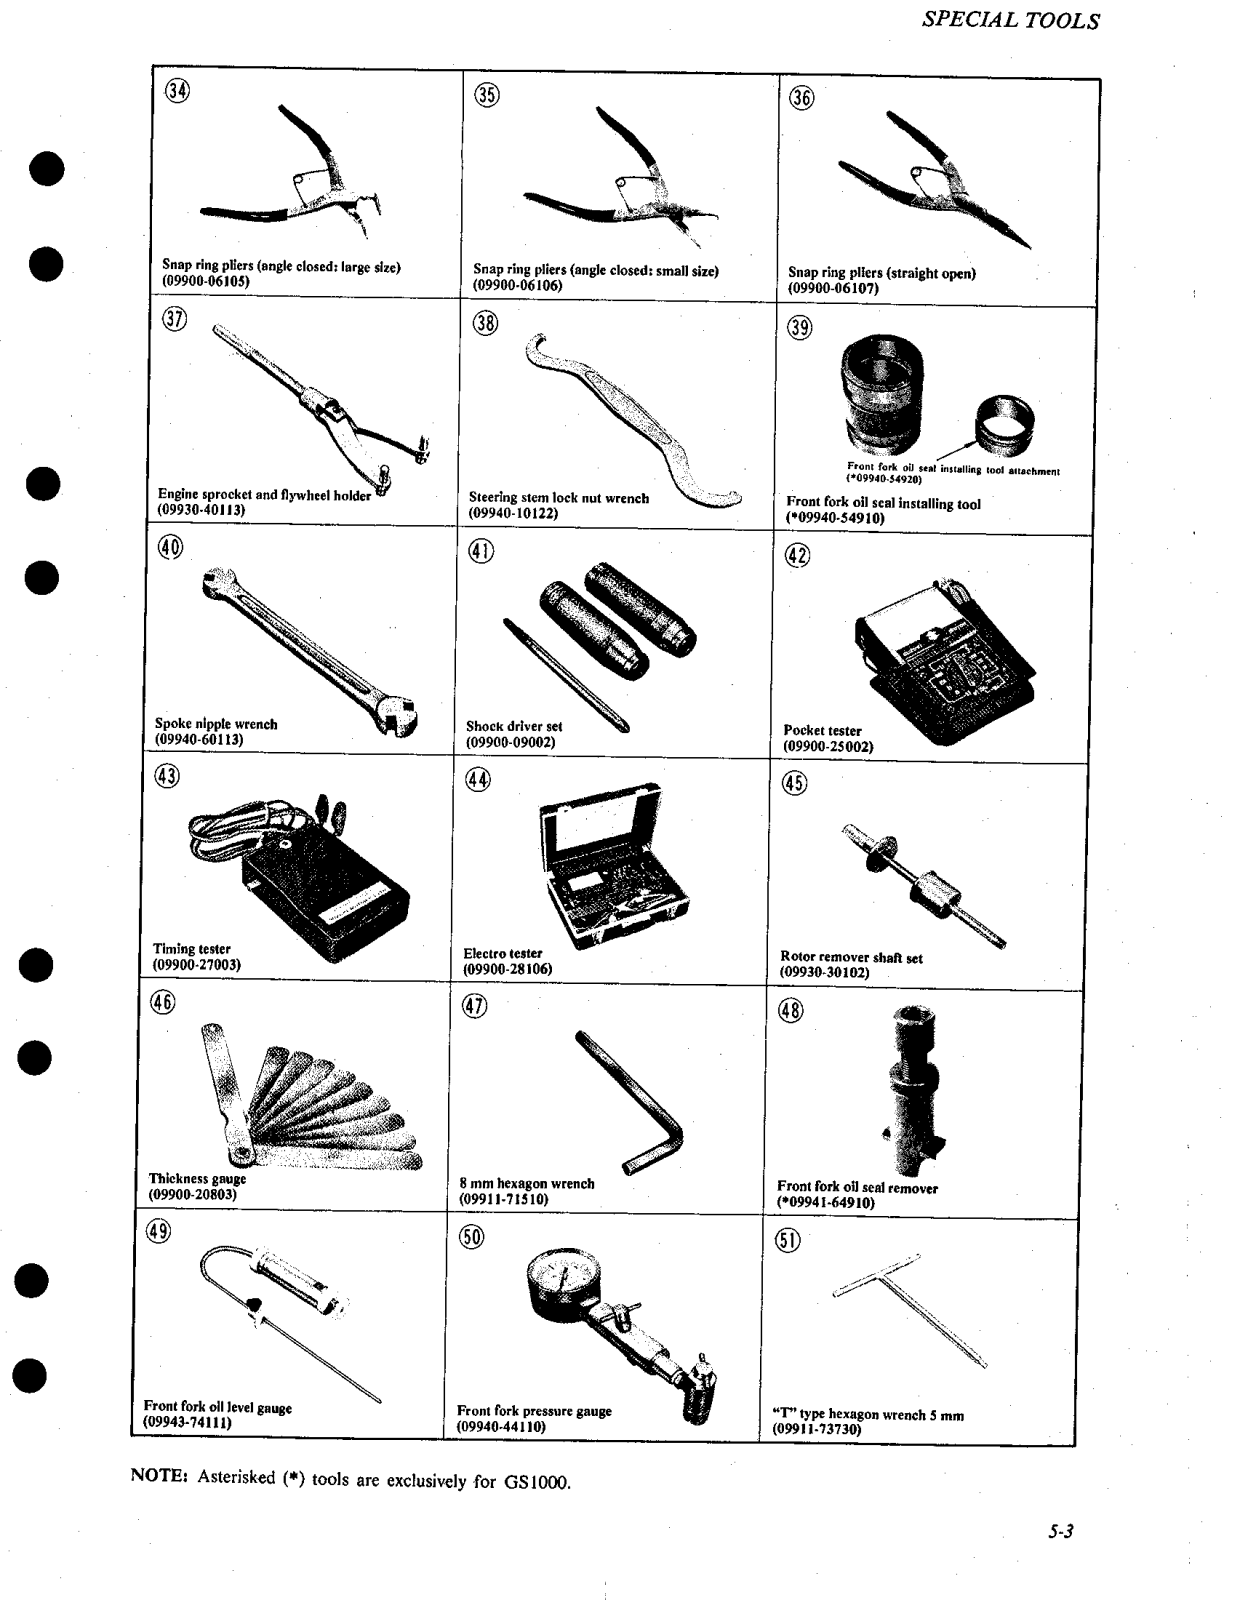 Suzuki GS 1000 1980 Service Manual